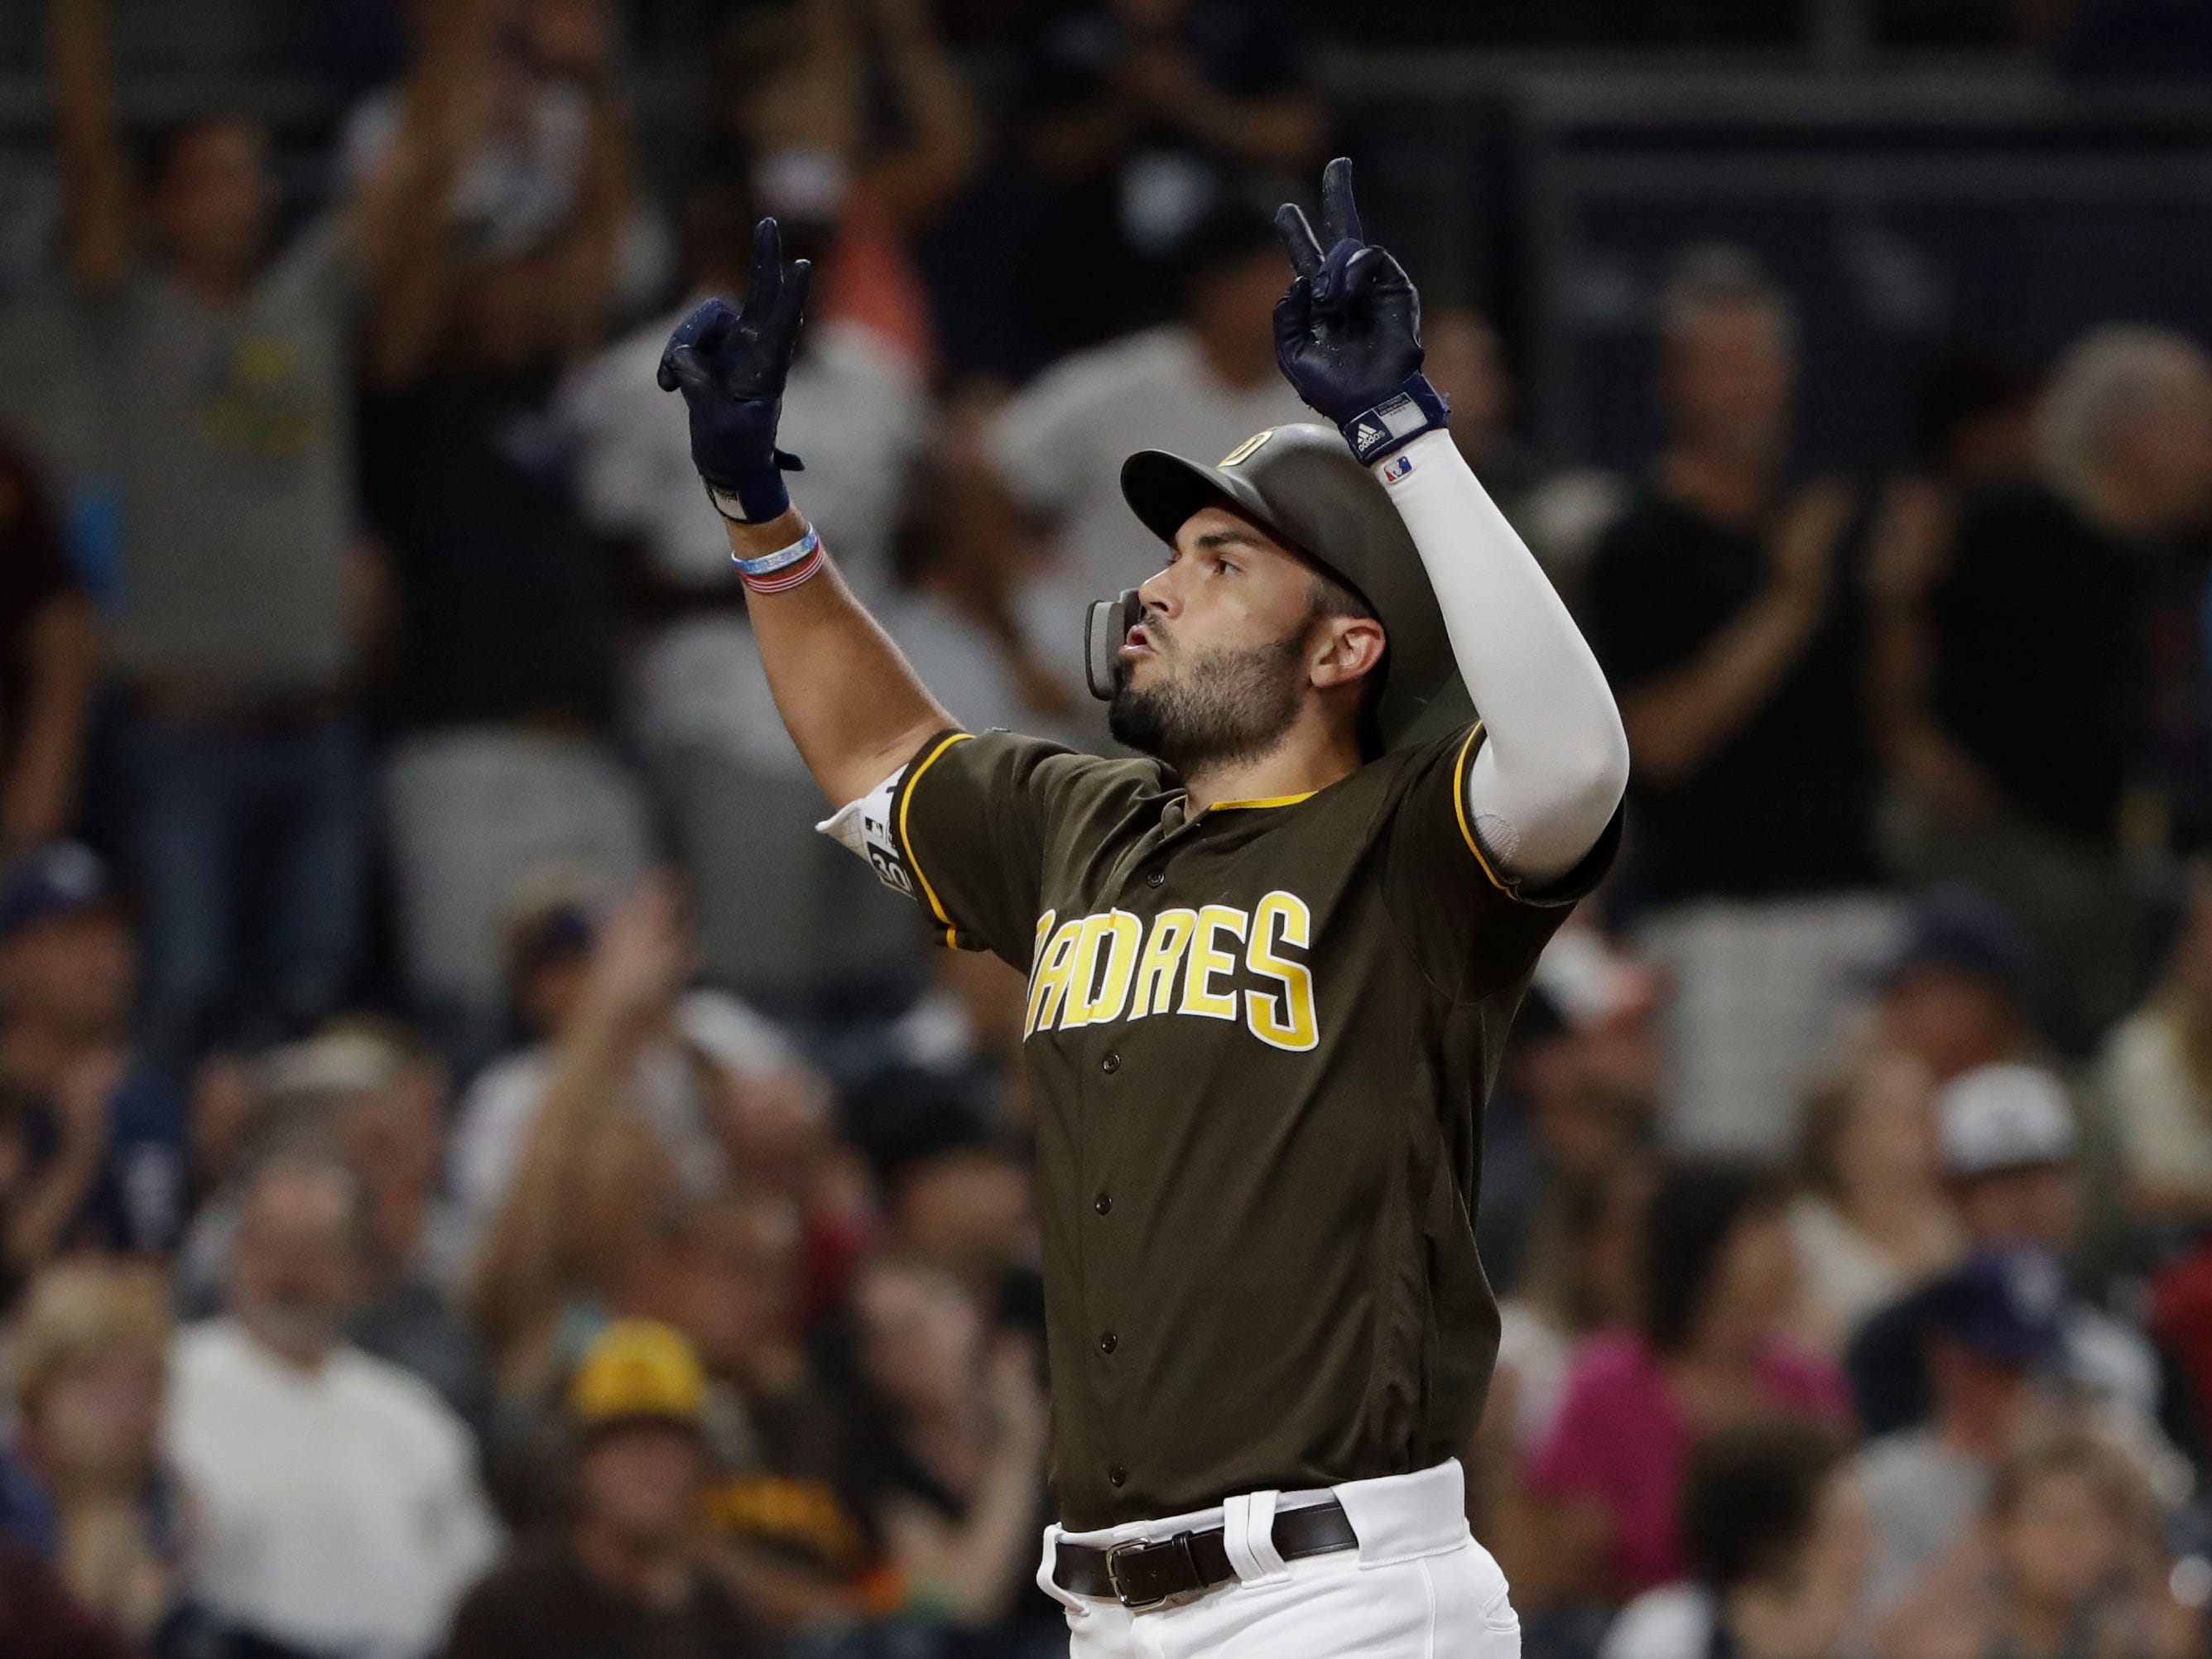 San Diego Padres' Eric Hosmer reacts after hitting a home run during the fifth inning of a baseball game against the Arizona Diamondbacks Friday, Aug. 17, 2018, in San Diego.